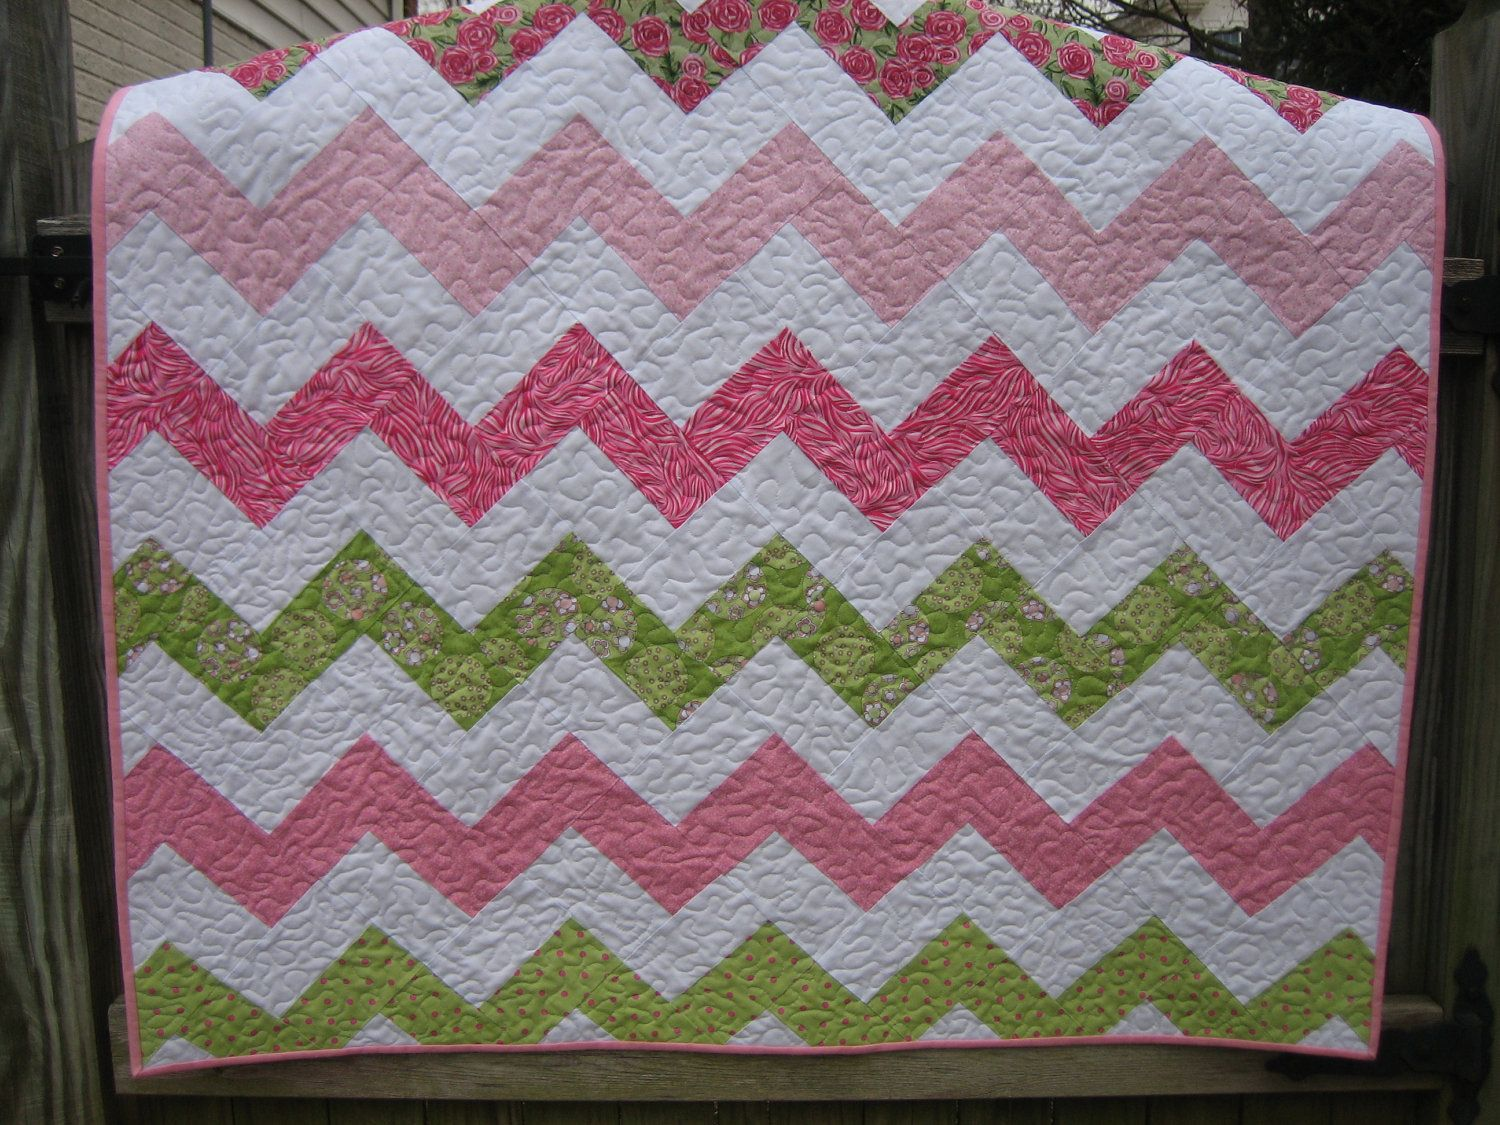 Chevron or Zig Zag Quilt in Pinks and Greens. $80.00, via Etsy.